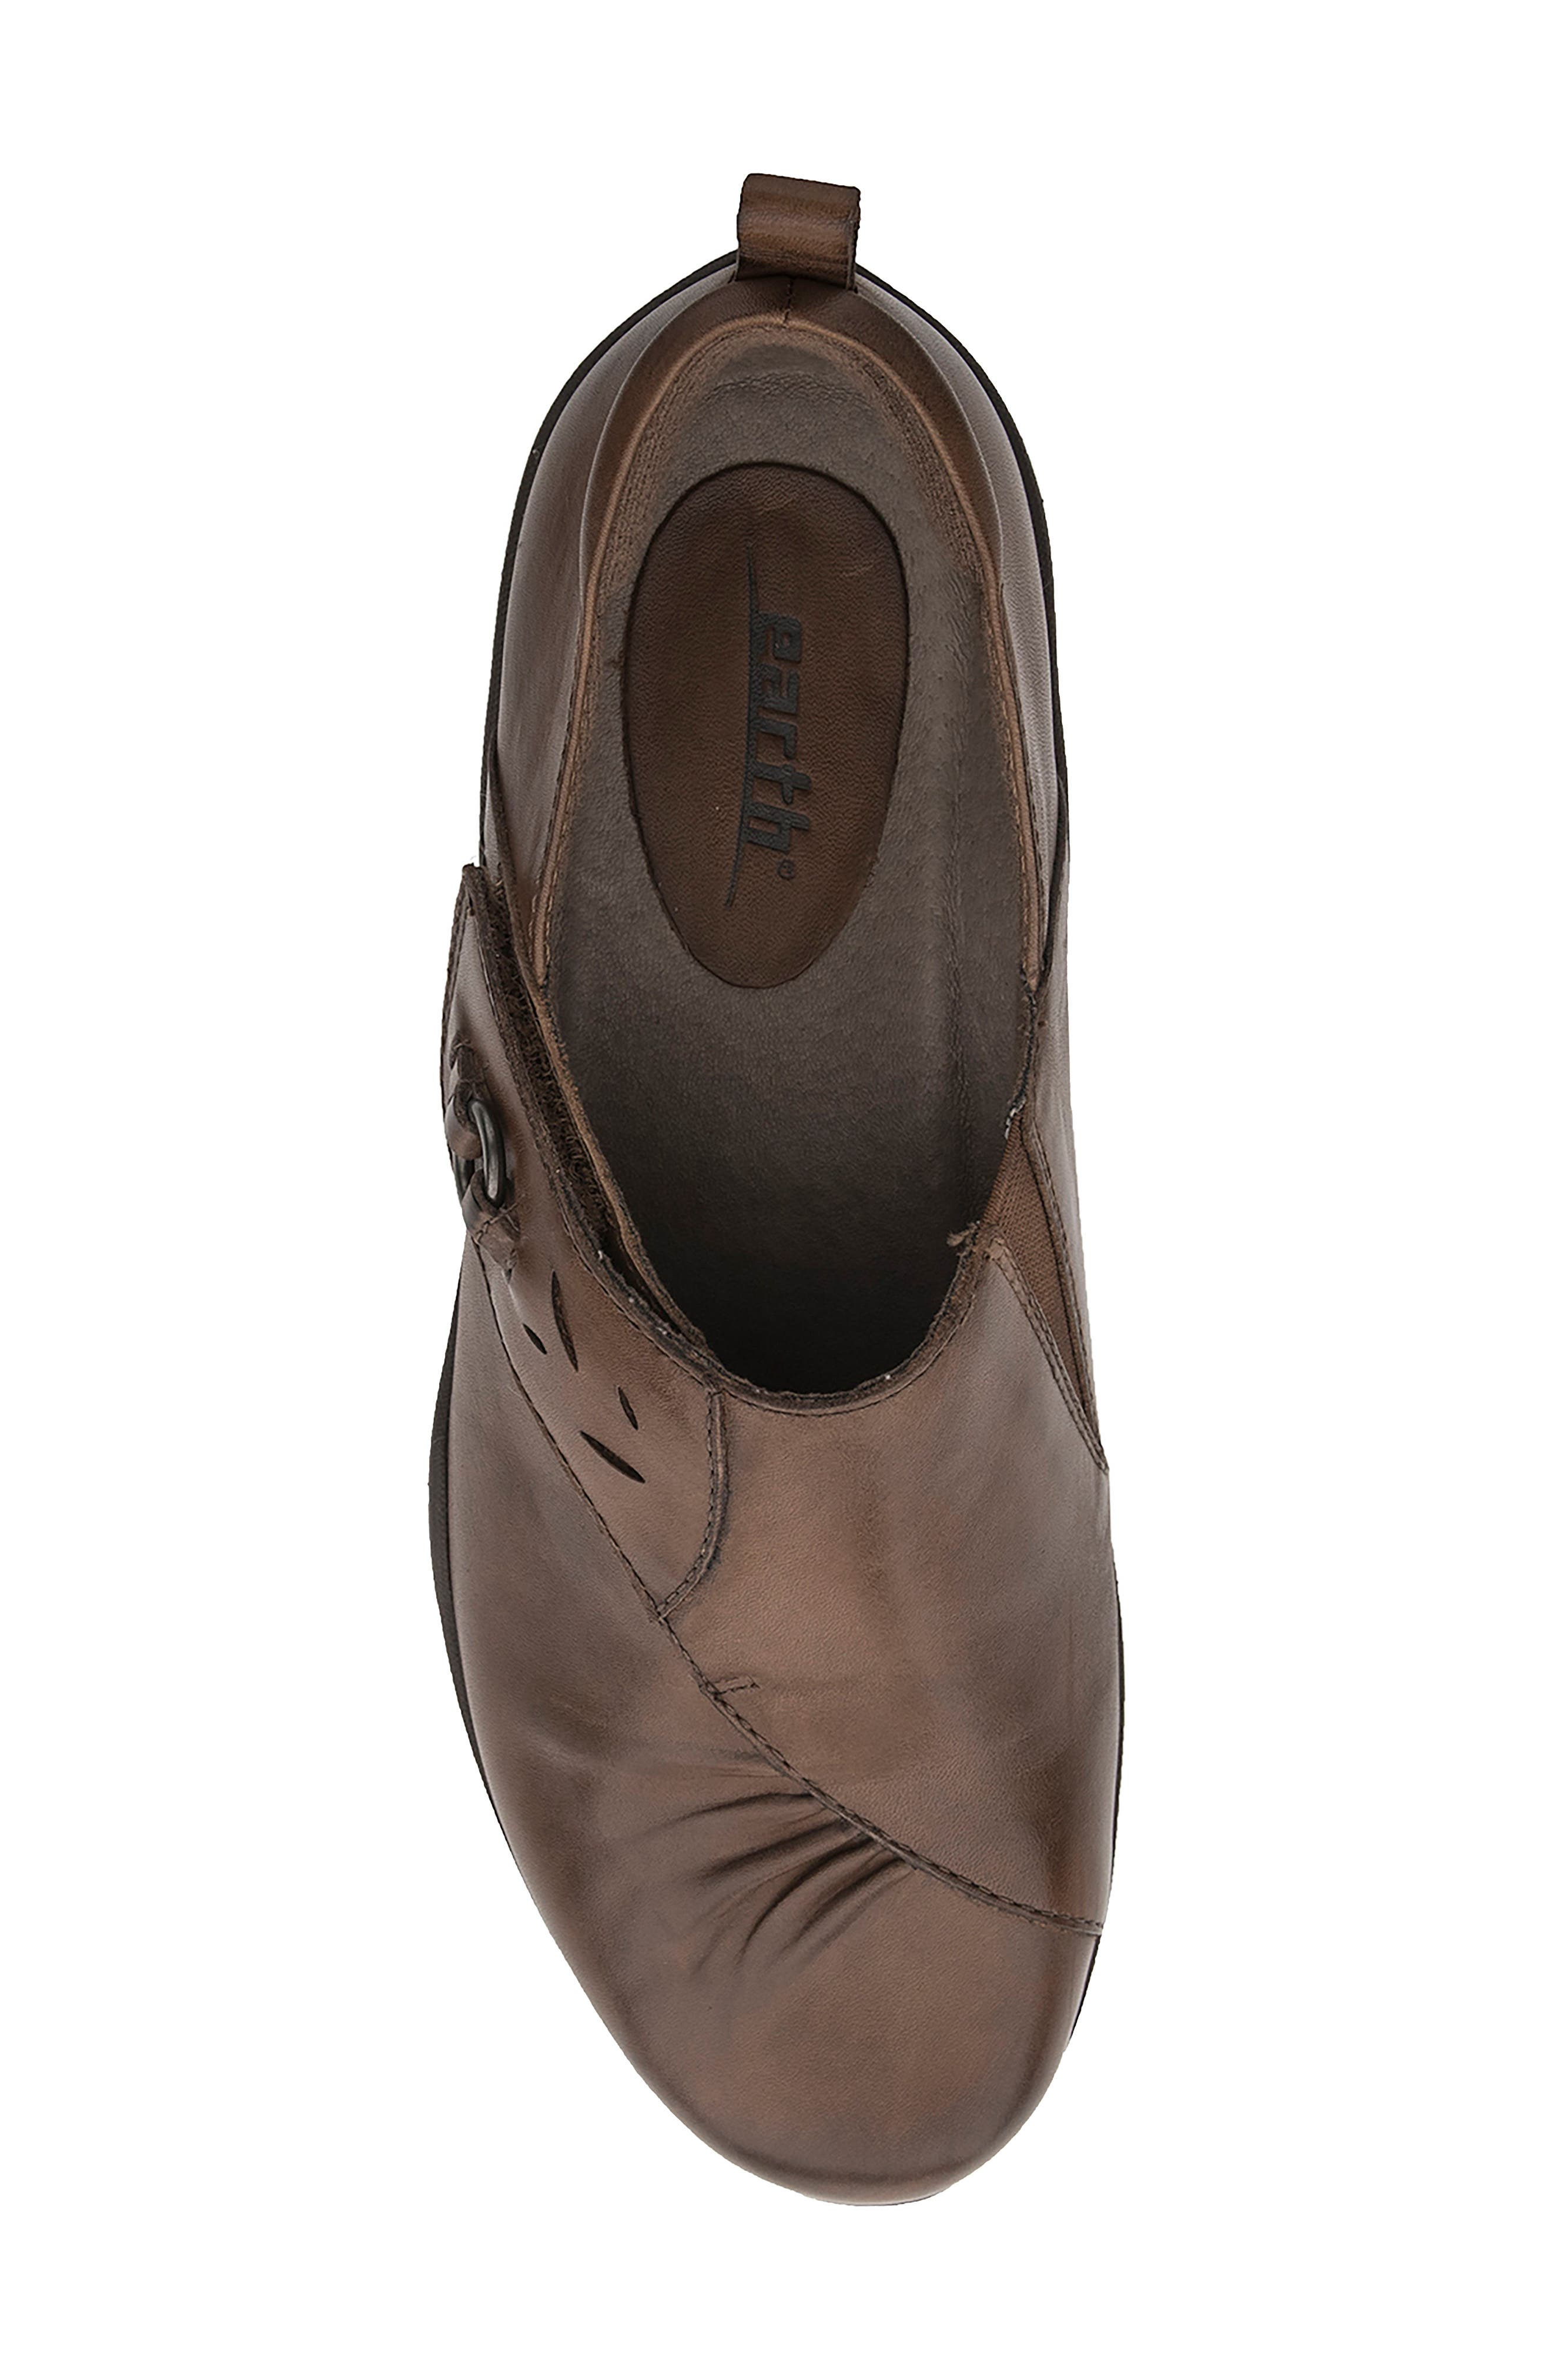 Amity Loafer,                             Alternate thumbnail 5, color,                             Almond Leather